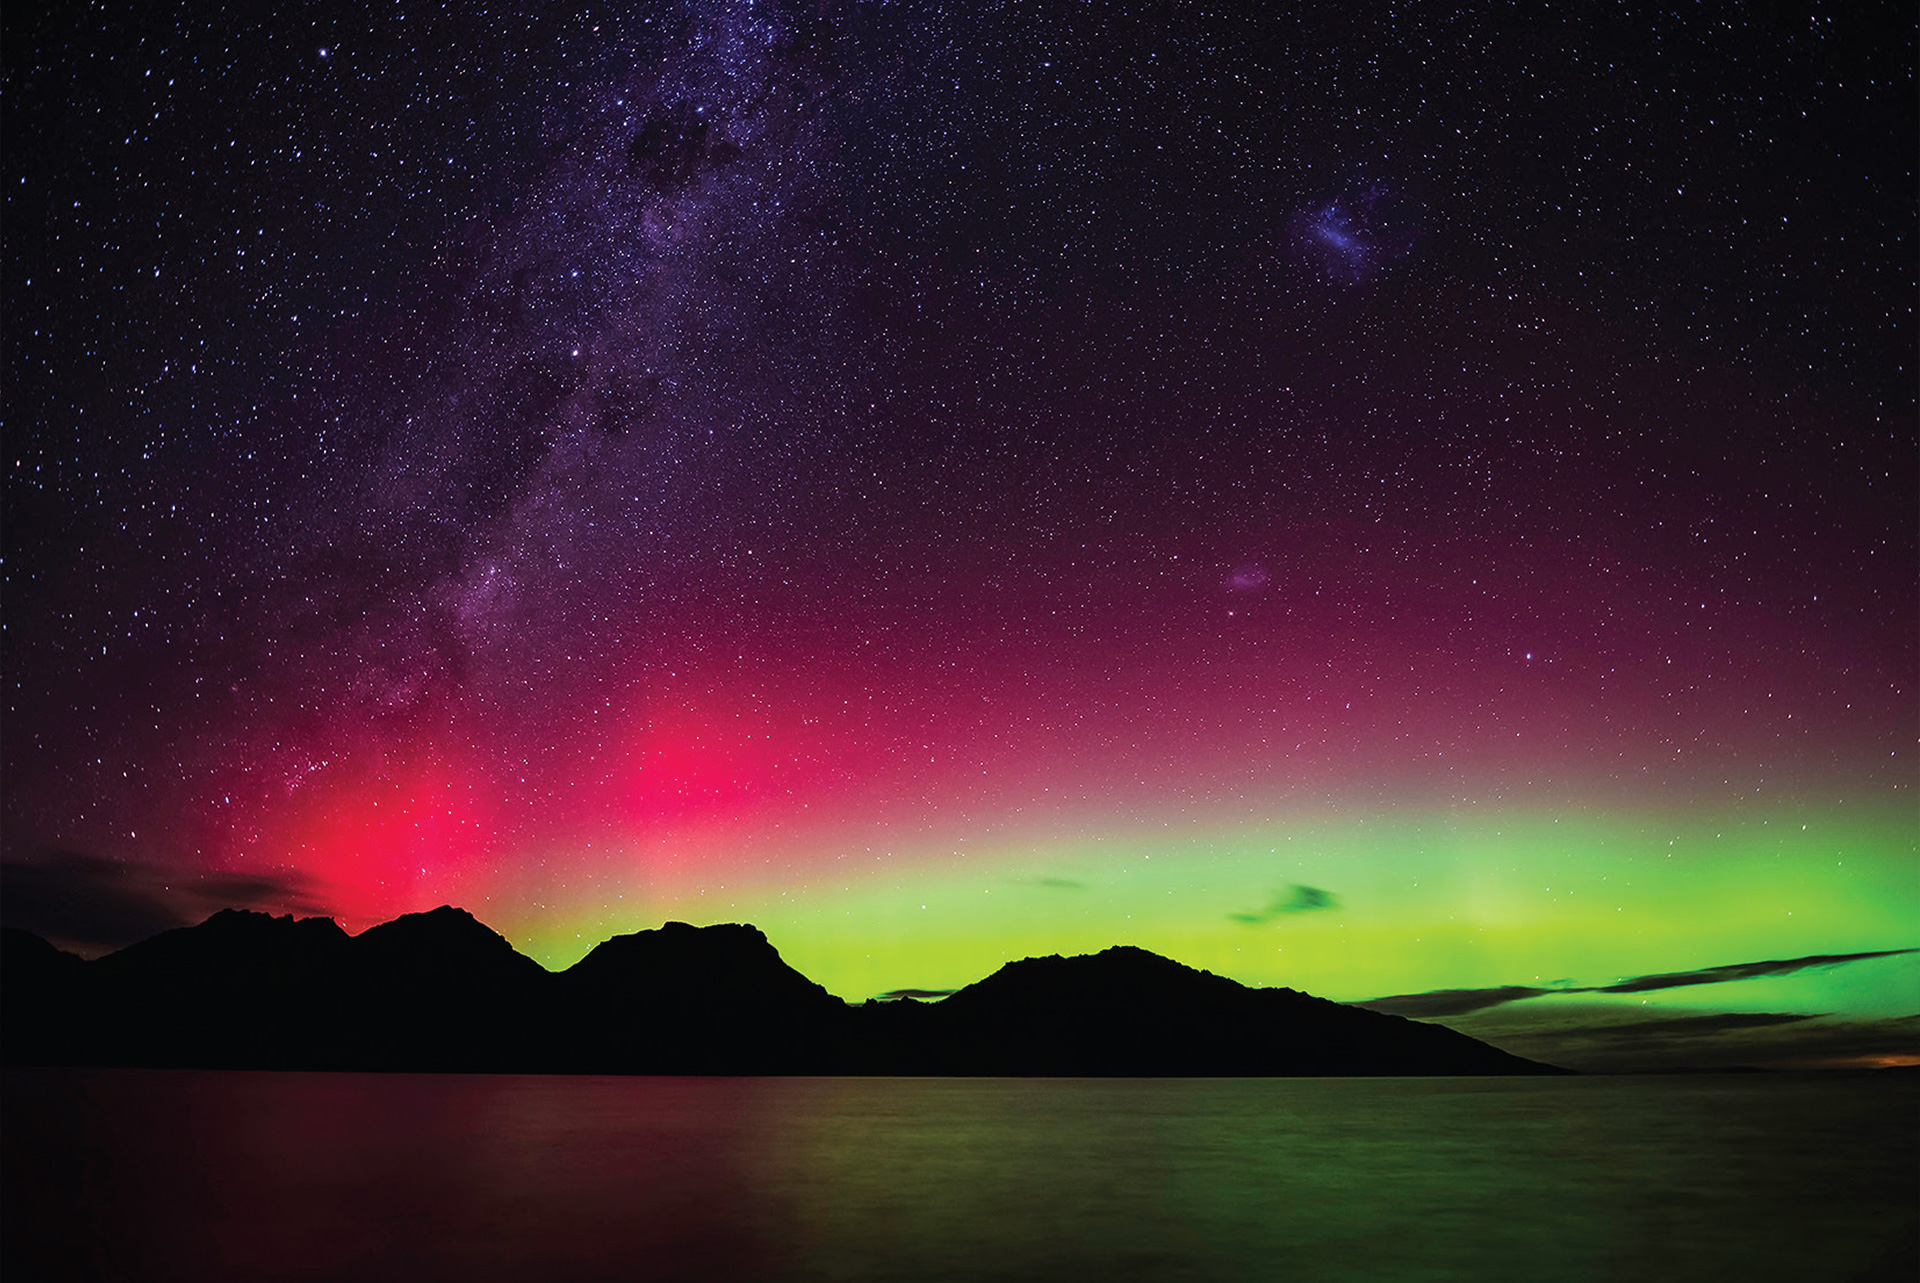 Purple, pink and green layers of light in the night sky, over silhouetted hills and sea, which reflects the colours